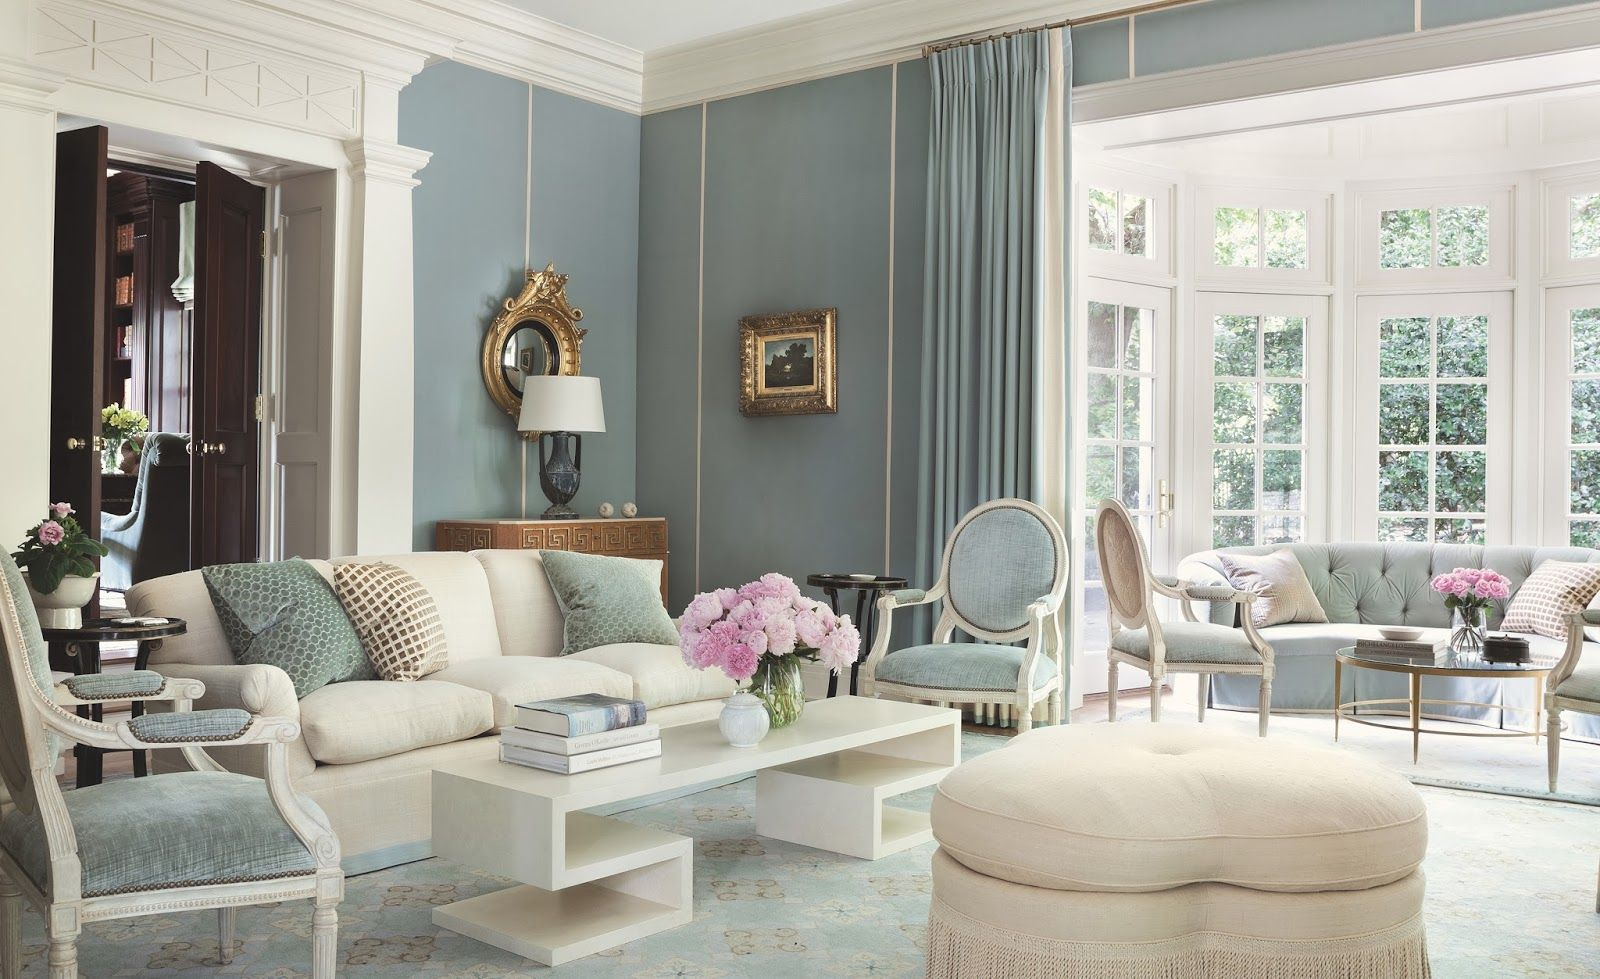 White And Light Blue Classic Living Interiors By Color Classic Living Room Living Room Interior Family Living Rooms